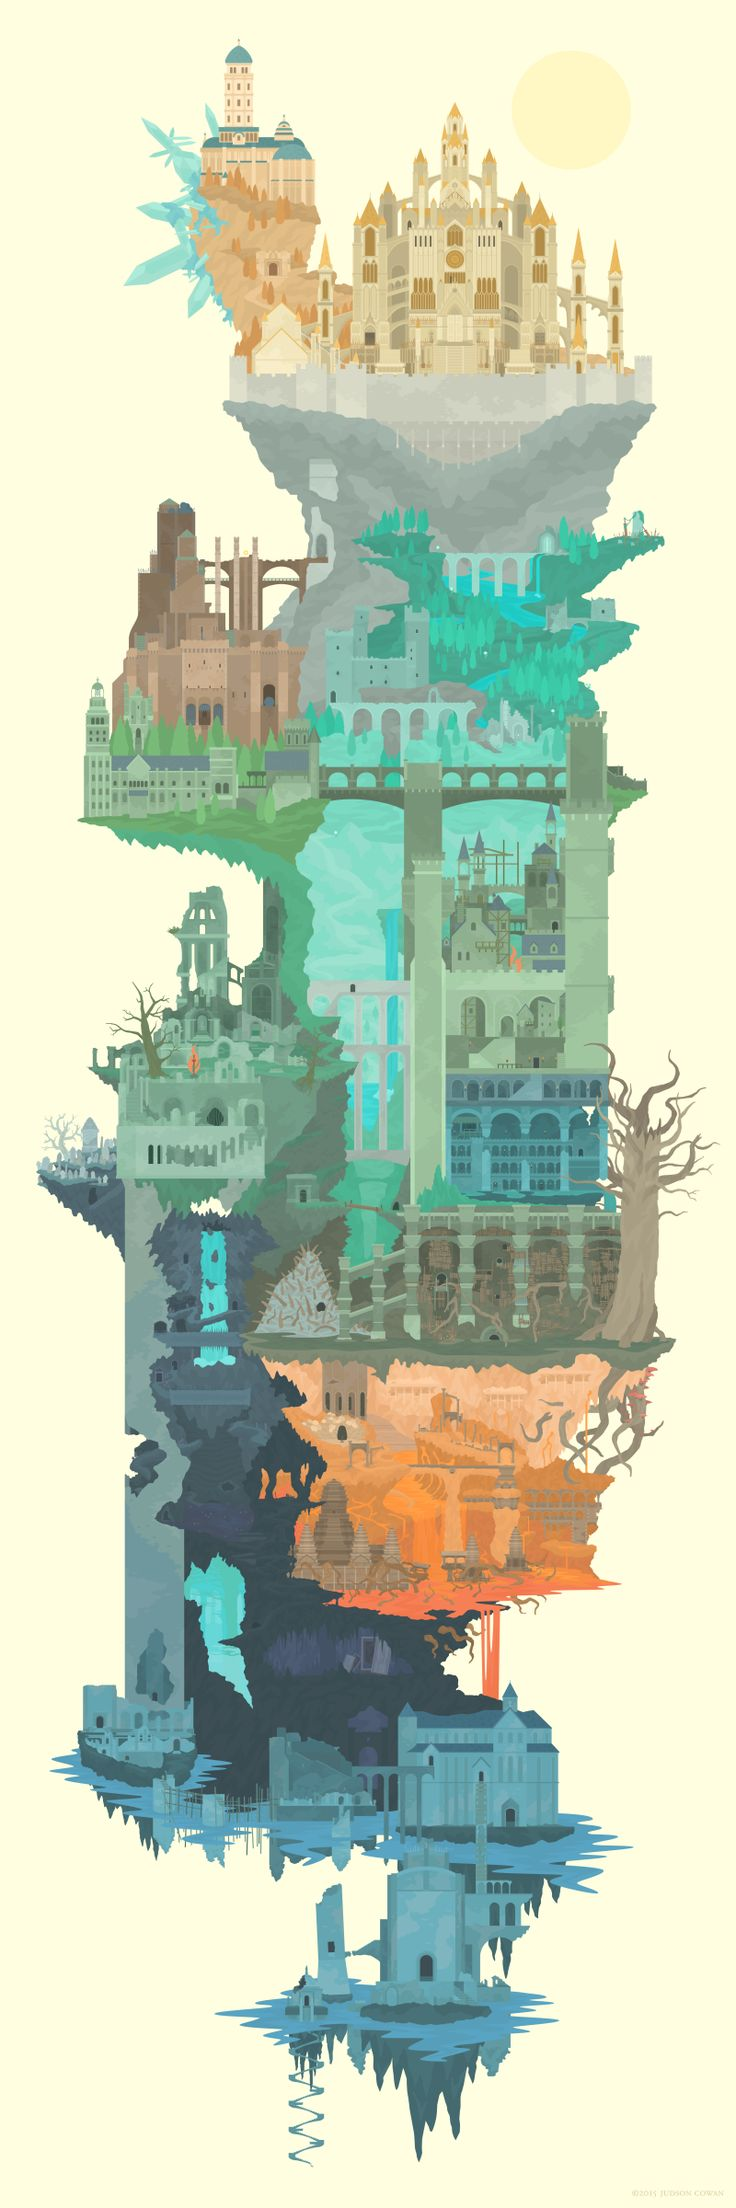 """The World of Dark Souls, From The Side."" Posted on kotaku.com (image credit Tettix) by Andras Neltz."